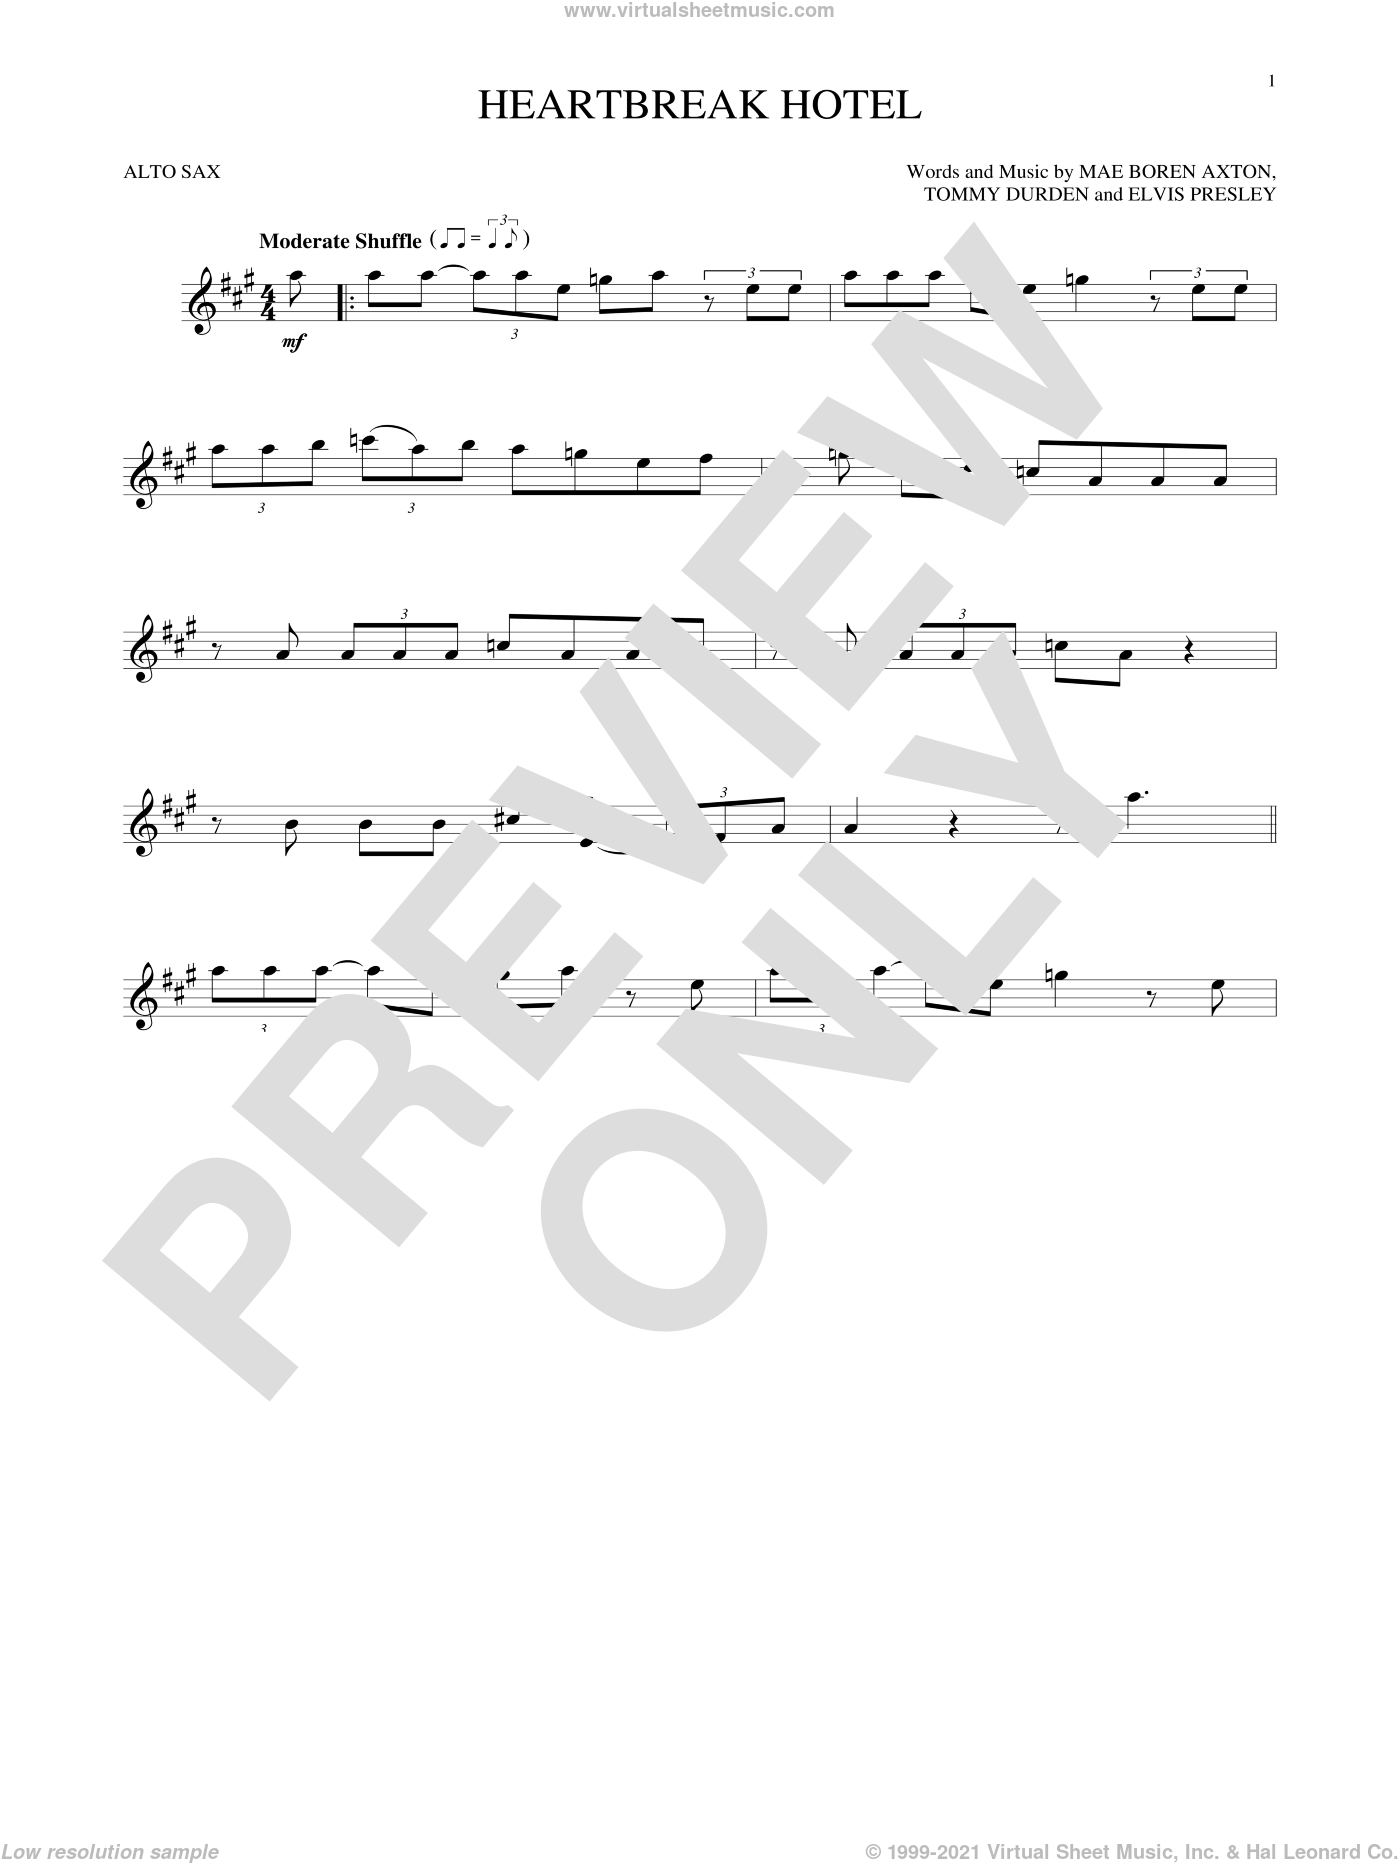 Heartbreak Hotel sheet music for alto saxophone solo by Elvis Presley, Mae Boren Axton and Tommy Durden, intermediate skill level